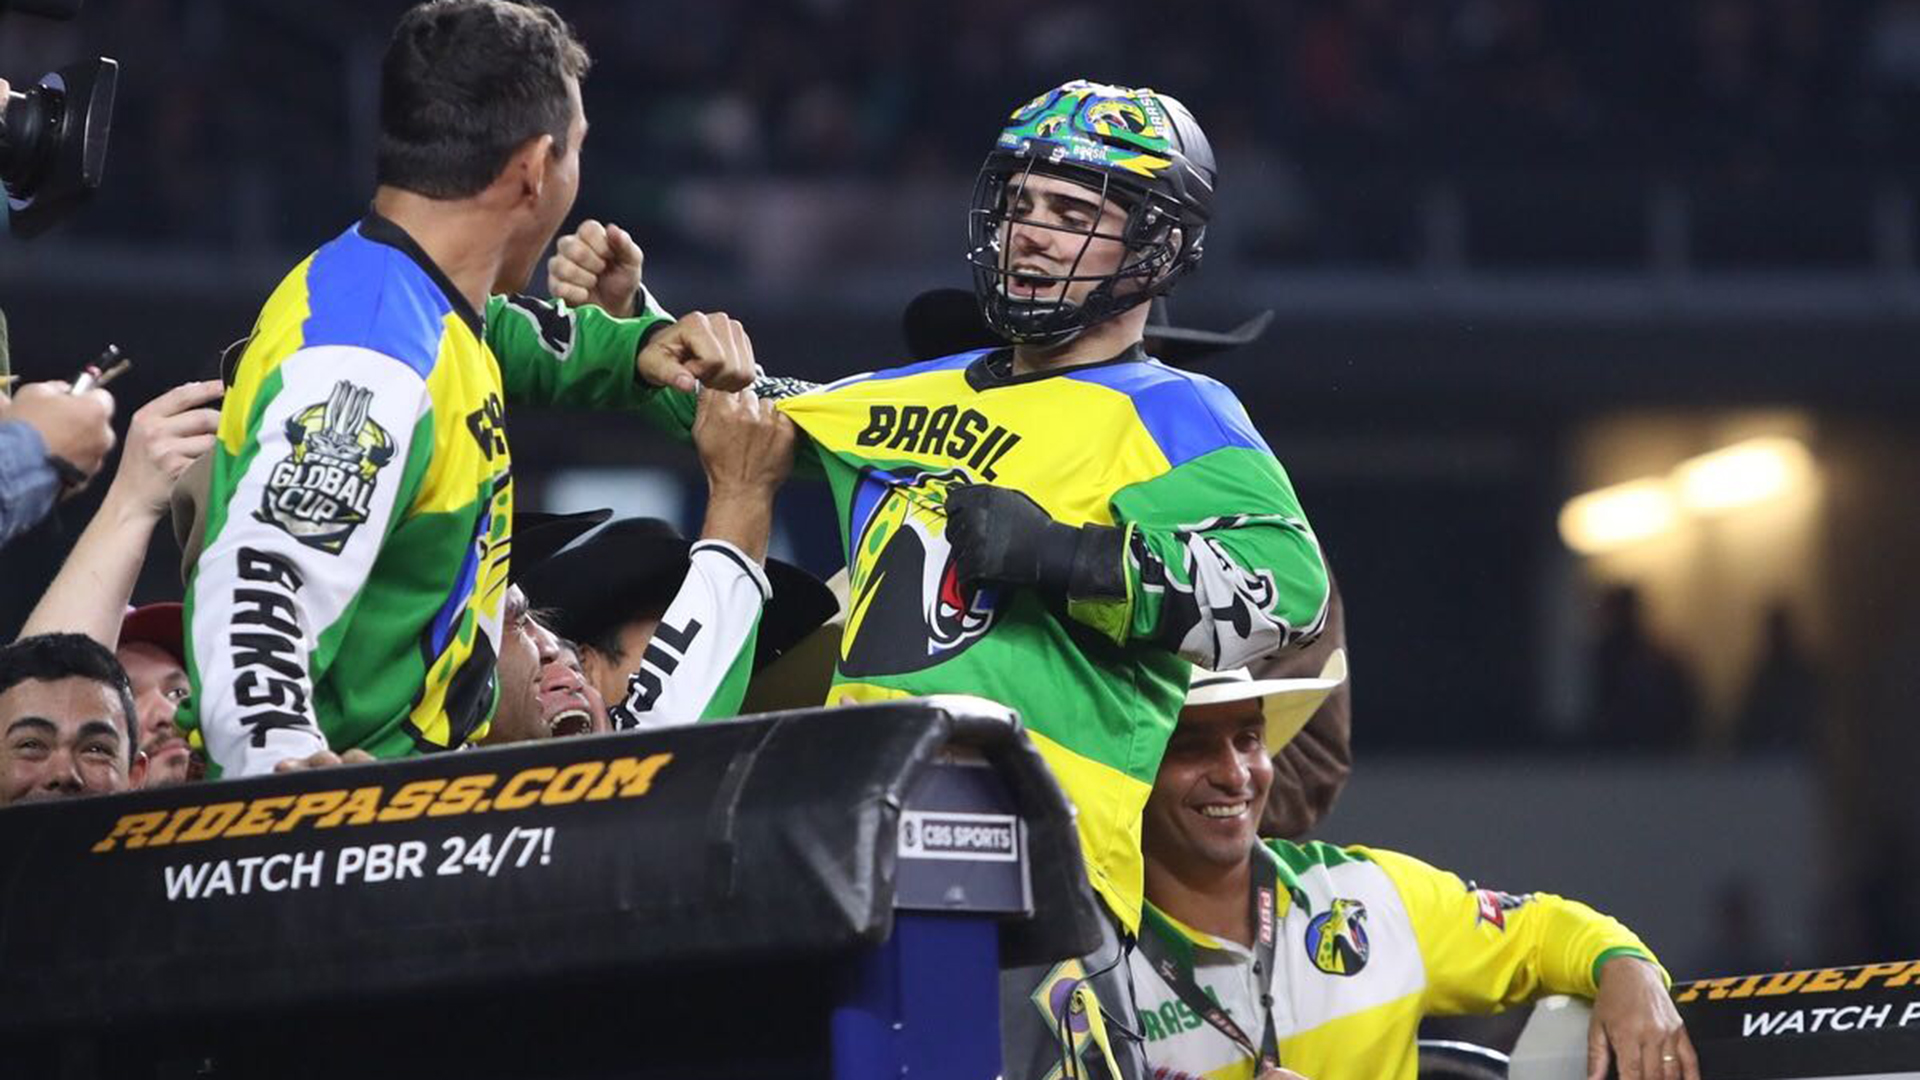 Team Brazil leads PBR Global Cup USA after first night